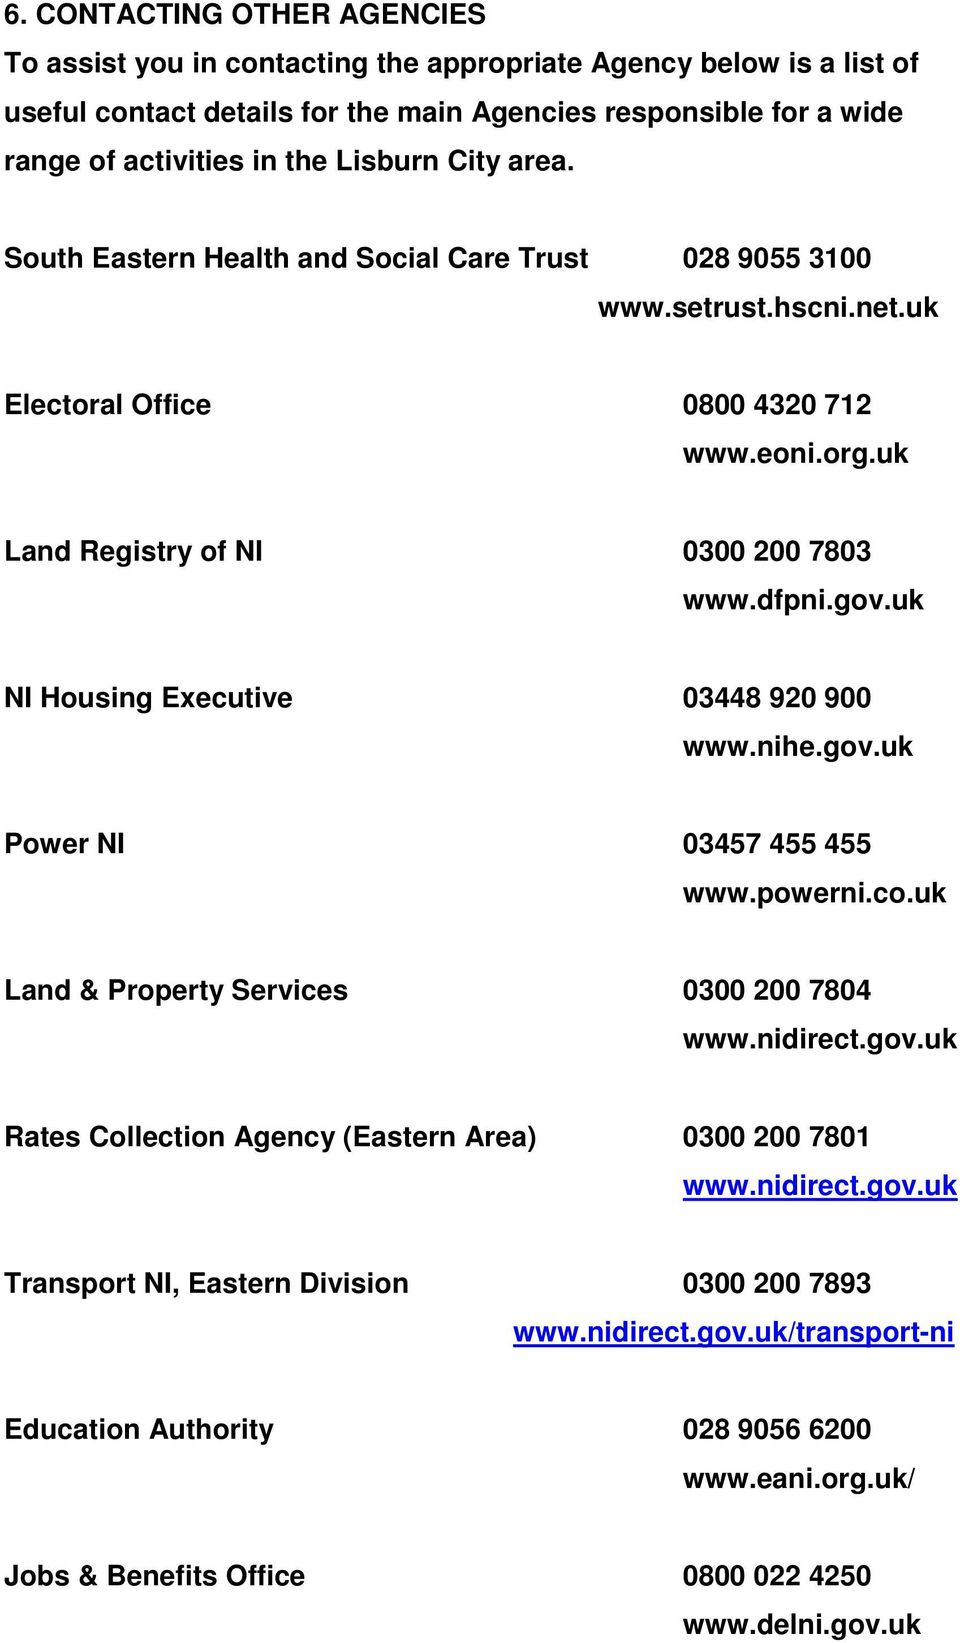 uk NI Housing Executive 03448 920 900 www.nihe.gov.uk Power NI 03457 455 455 www.powerni.co.uk Land & Property Services 0300 200 7804 www.nidirect.gov.uk Rates Collection Agency (Eastern Area) 0300 200 7801 www.